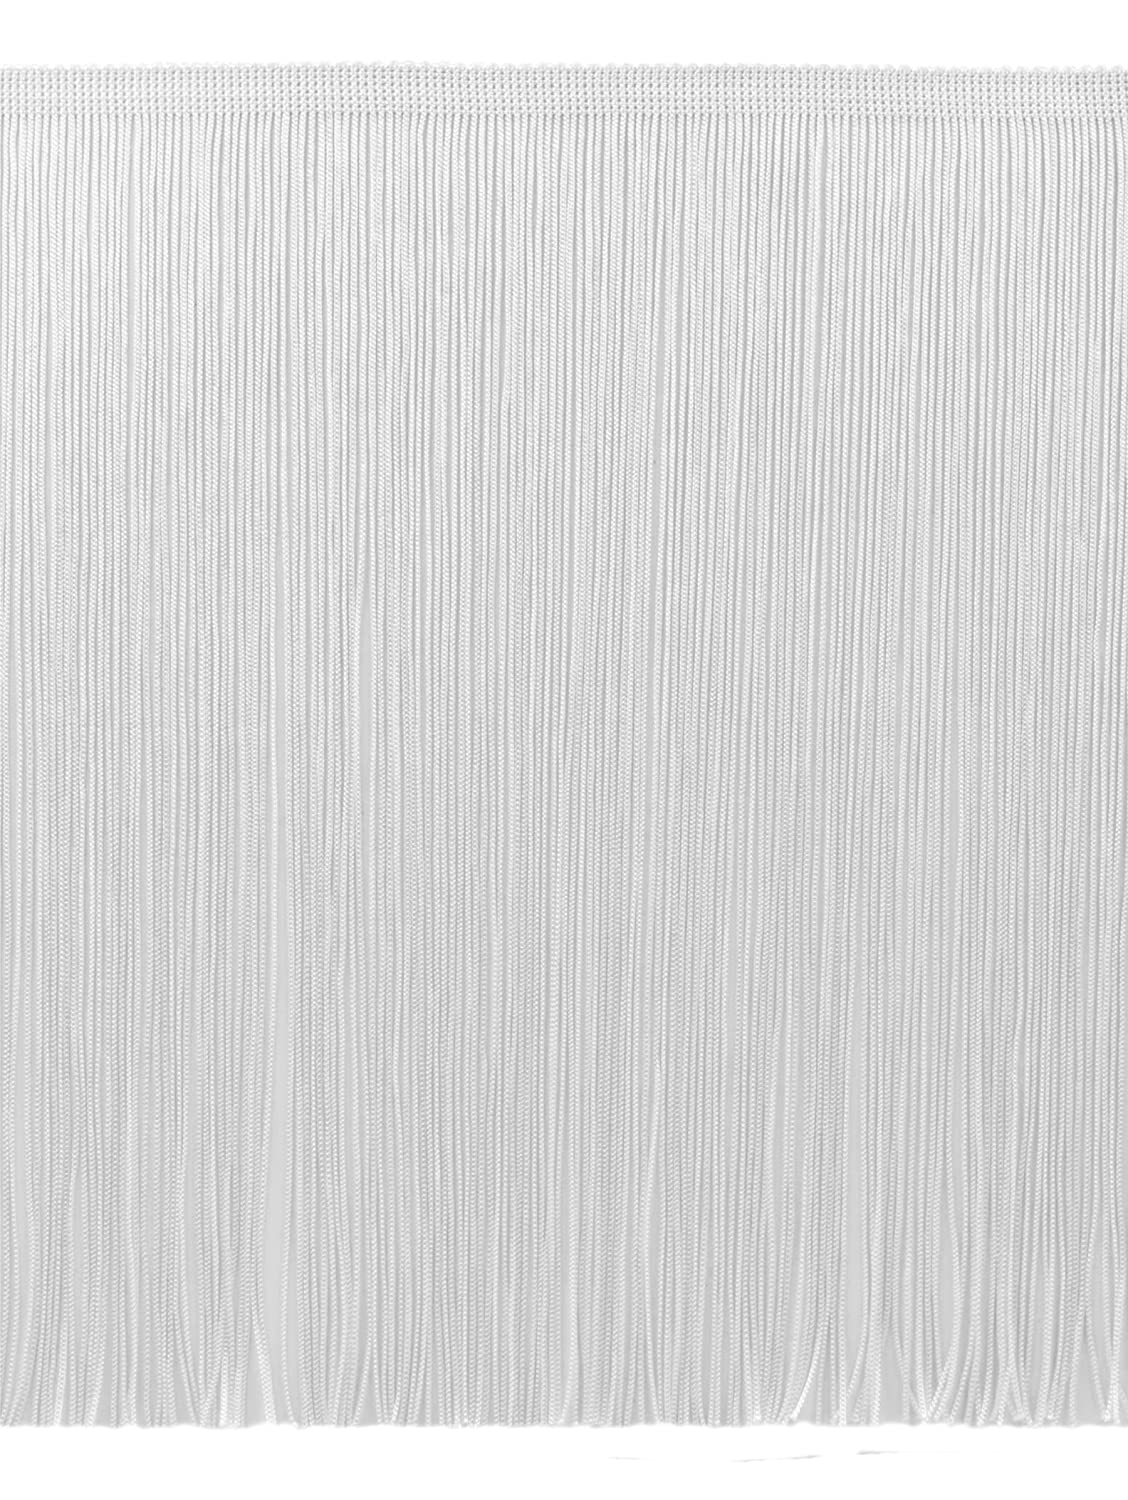 DecoPro 11 Yard Value Pack of 12 Inch Chainette Fringe Trim, Style# CF12 Color: White - A1 (32.5 Feet / 10M)